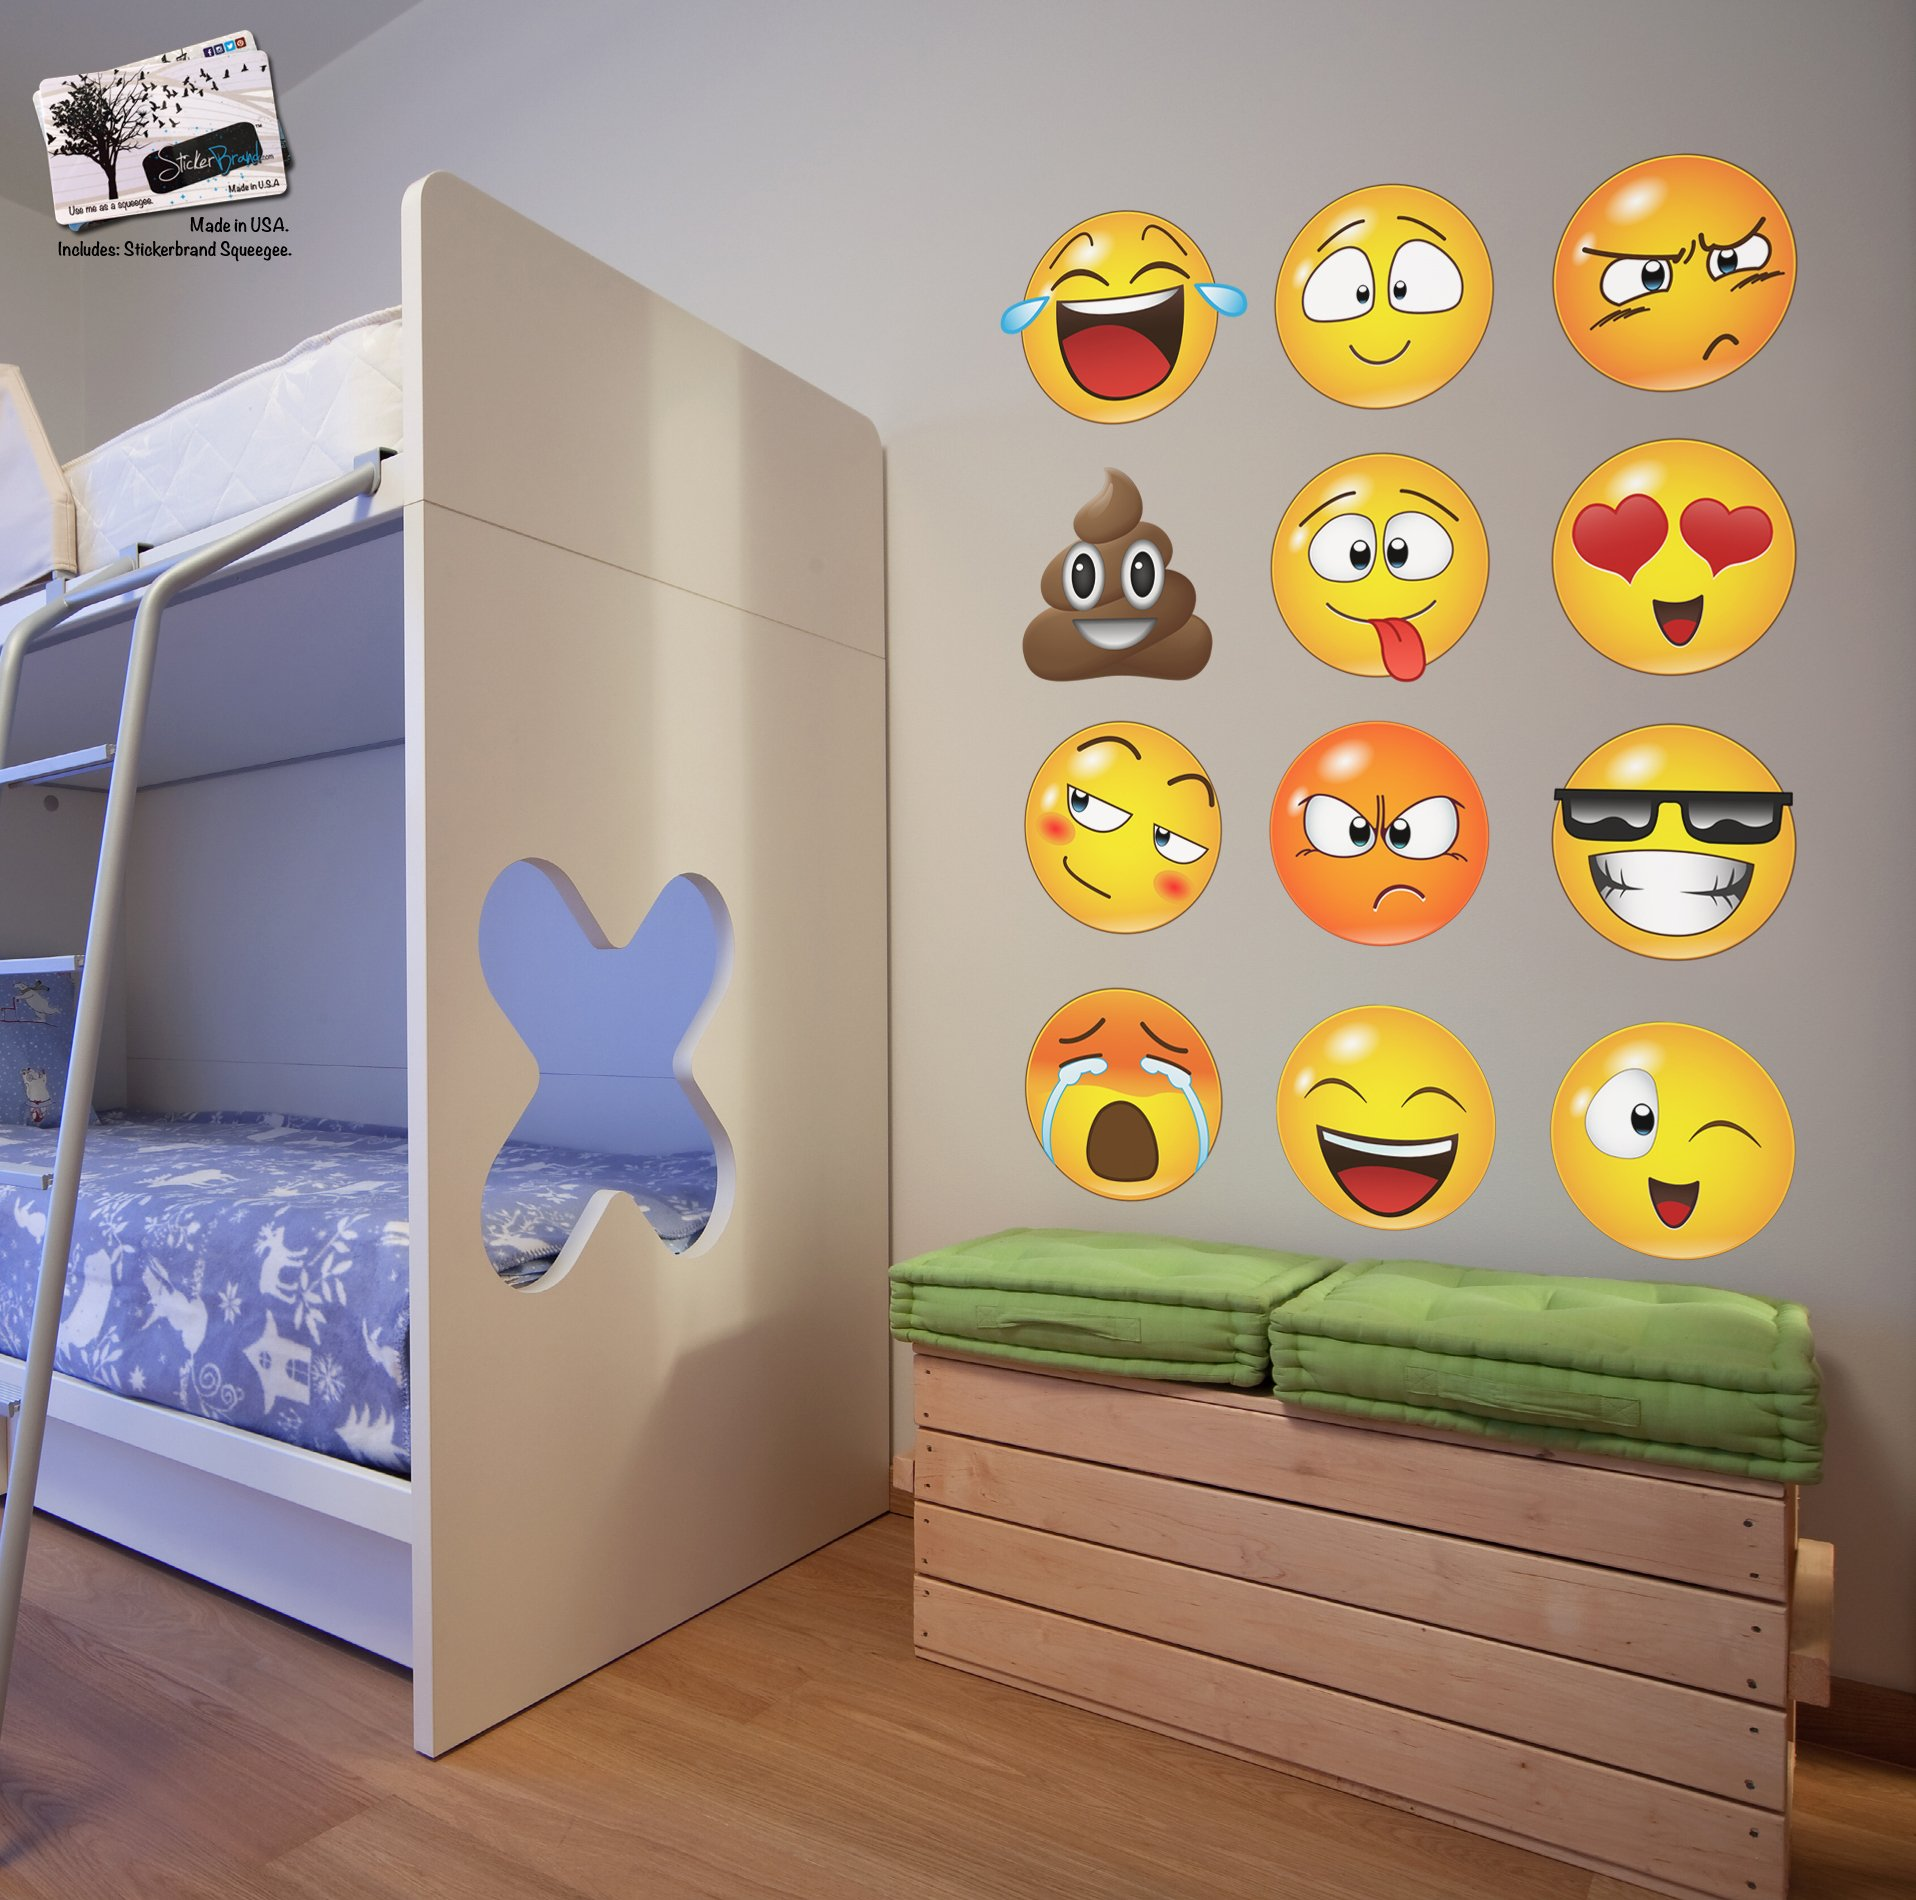 12 Large Emoji Wall Decal Faces Sticker #6052s 10in X 10in Each by Stickerbrand (Image #3)